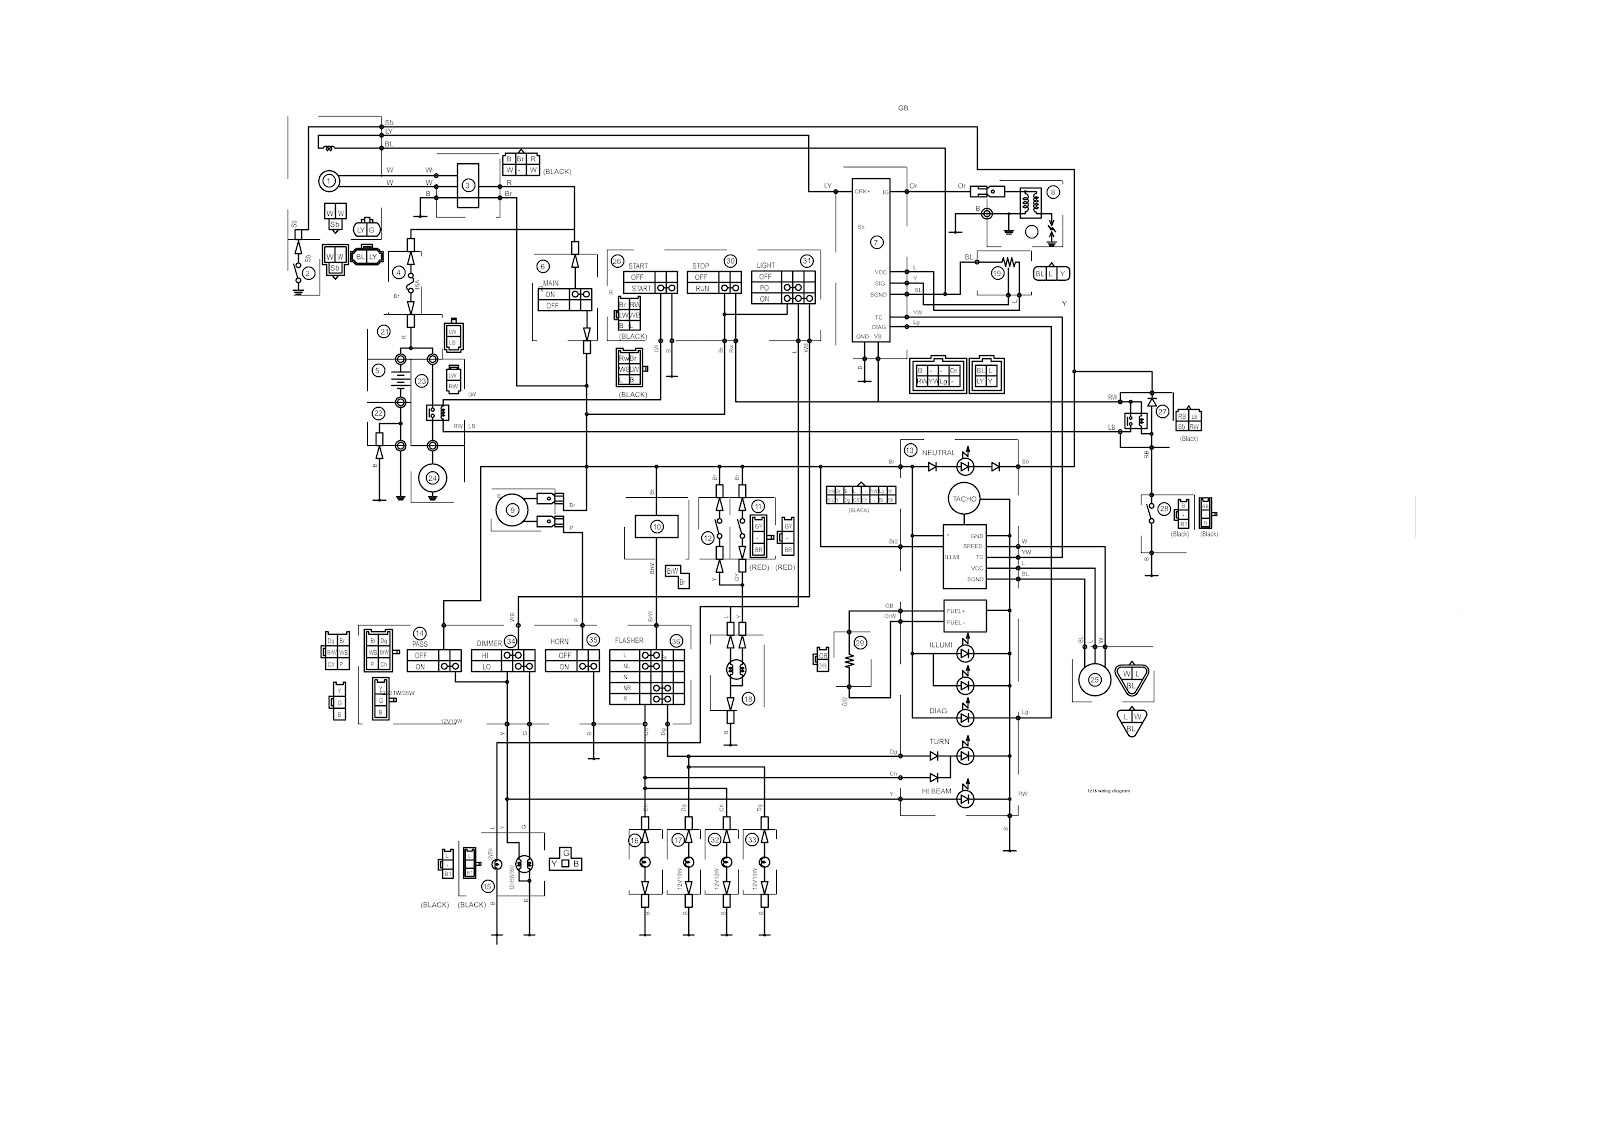 Yamaha Control Box Wiring Diagram Free Picture Manual Of Schematic Motor Rh Aikidorodez Com